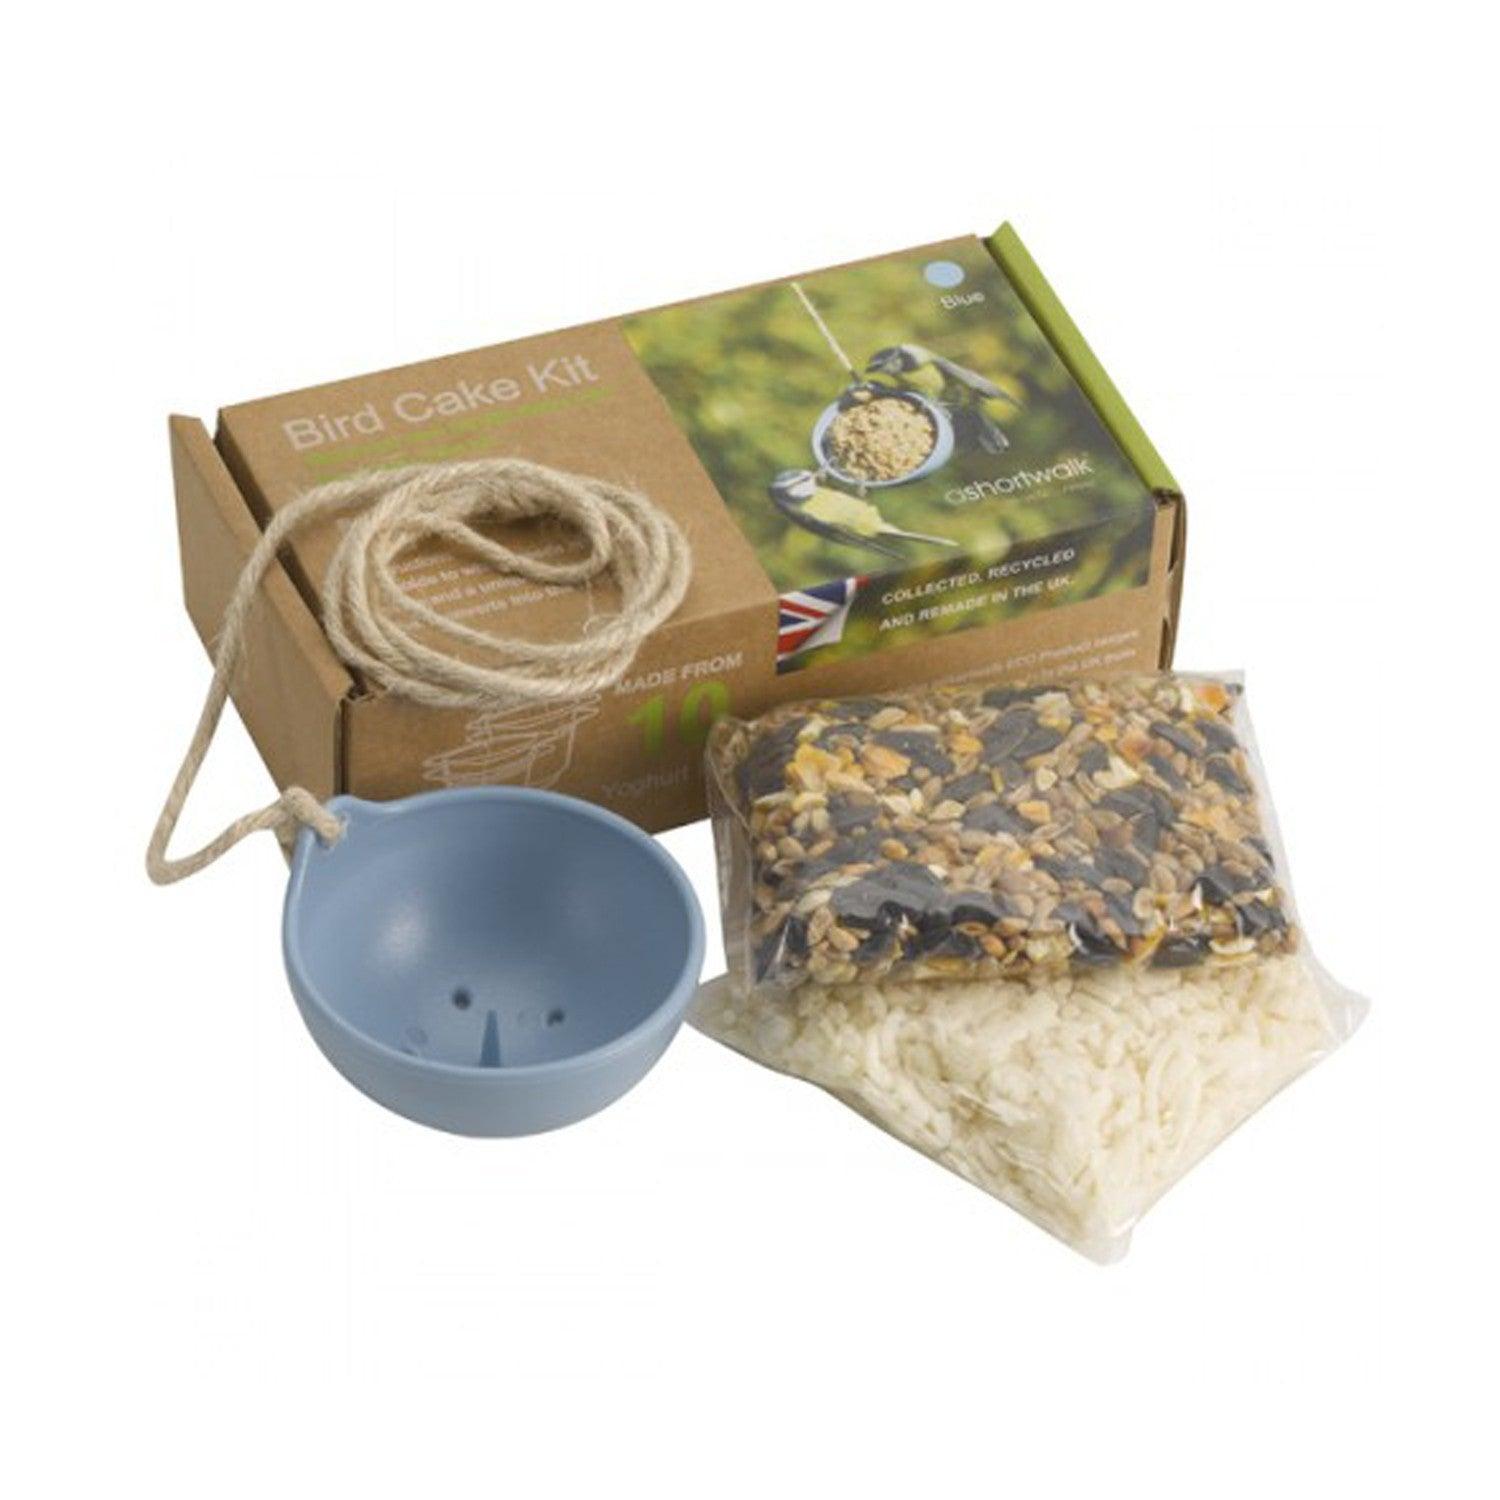 sustainable bird cake kit